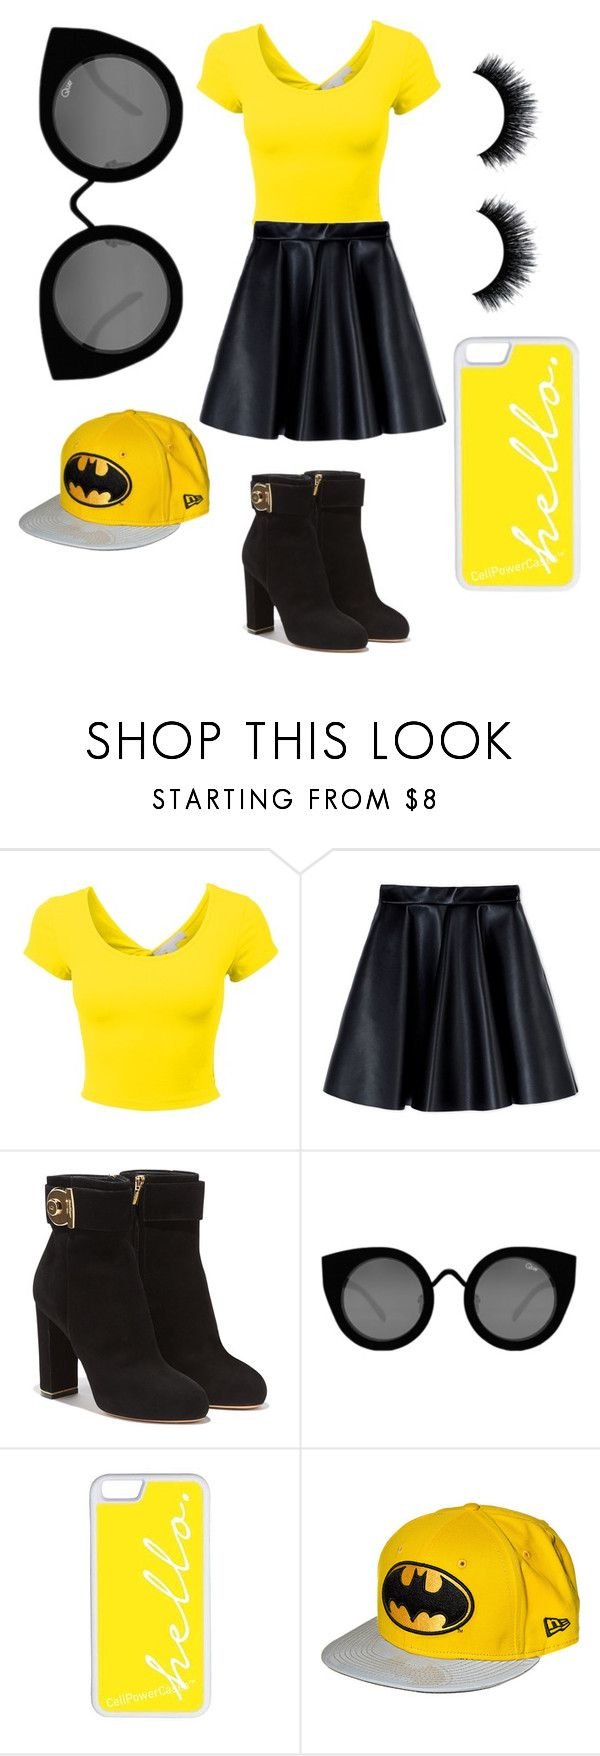 """Untitled #153"" by cintia2019 ❤ liked on Polyvore featuring MSGM, Salvatore Ferragamo, Quay and CellPowerCases"